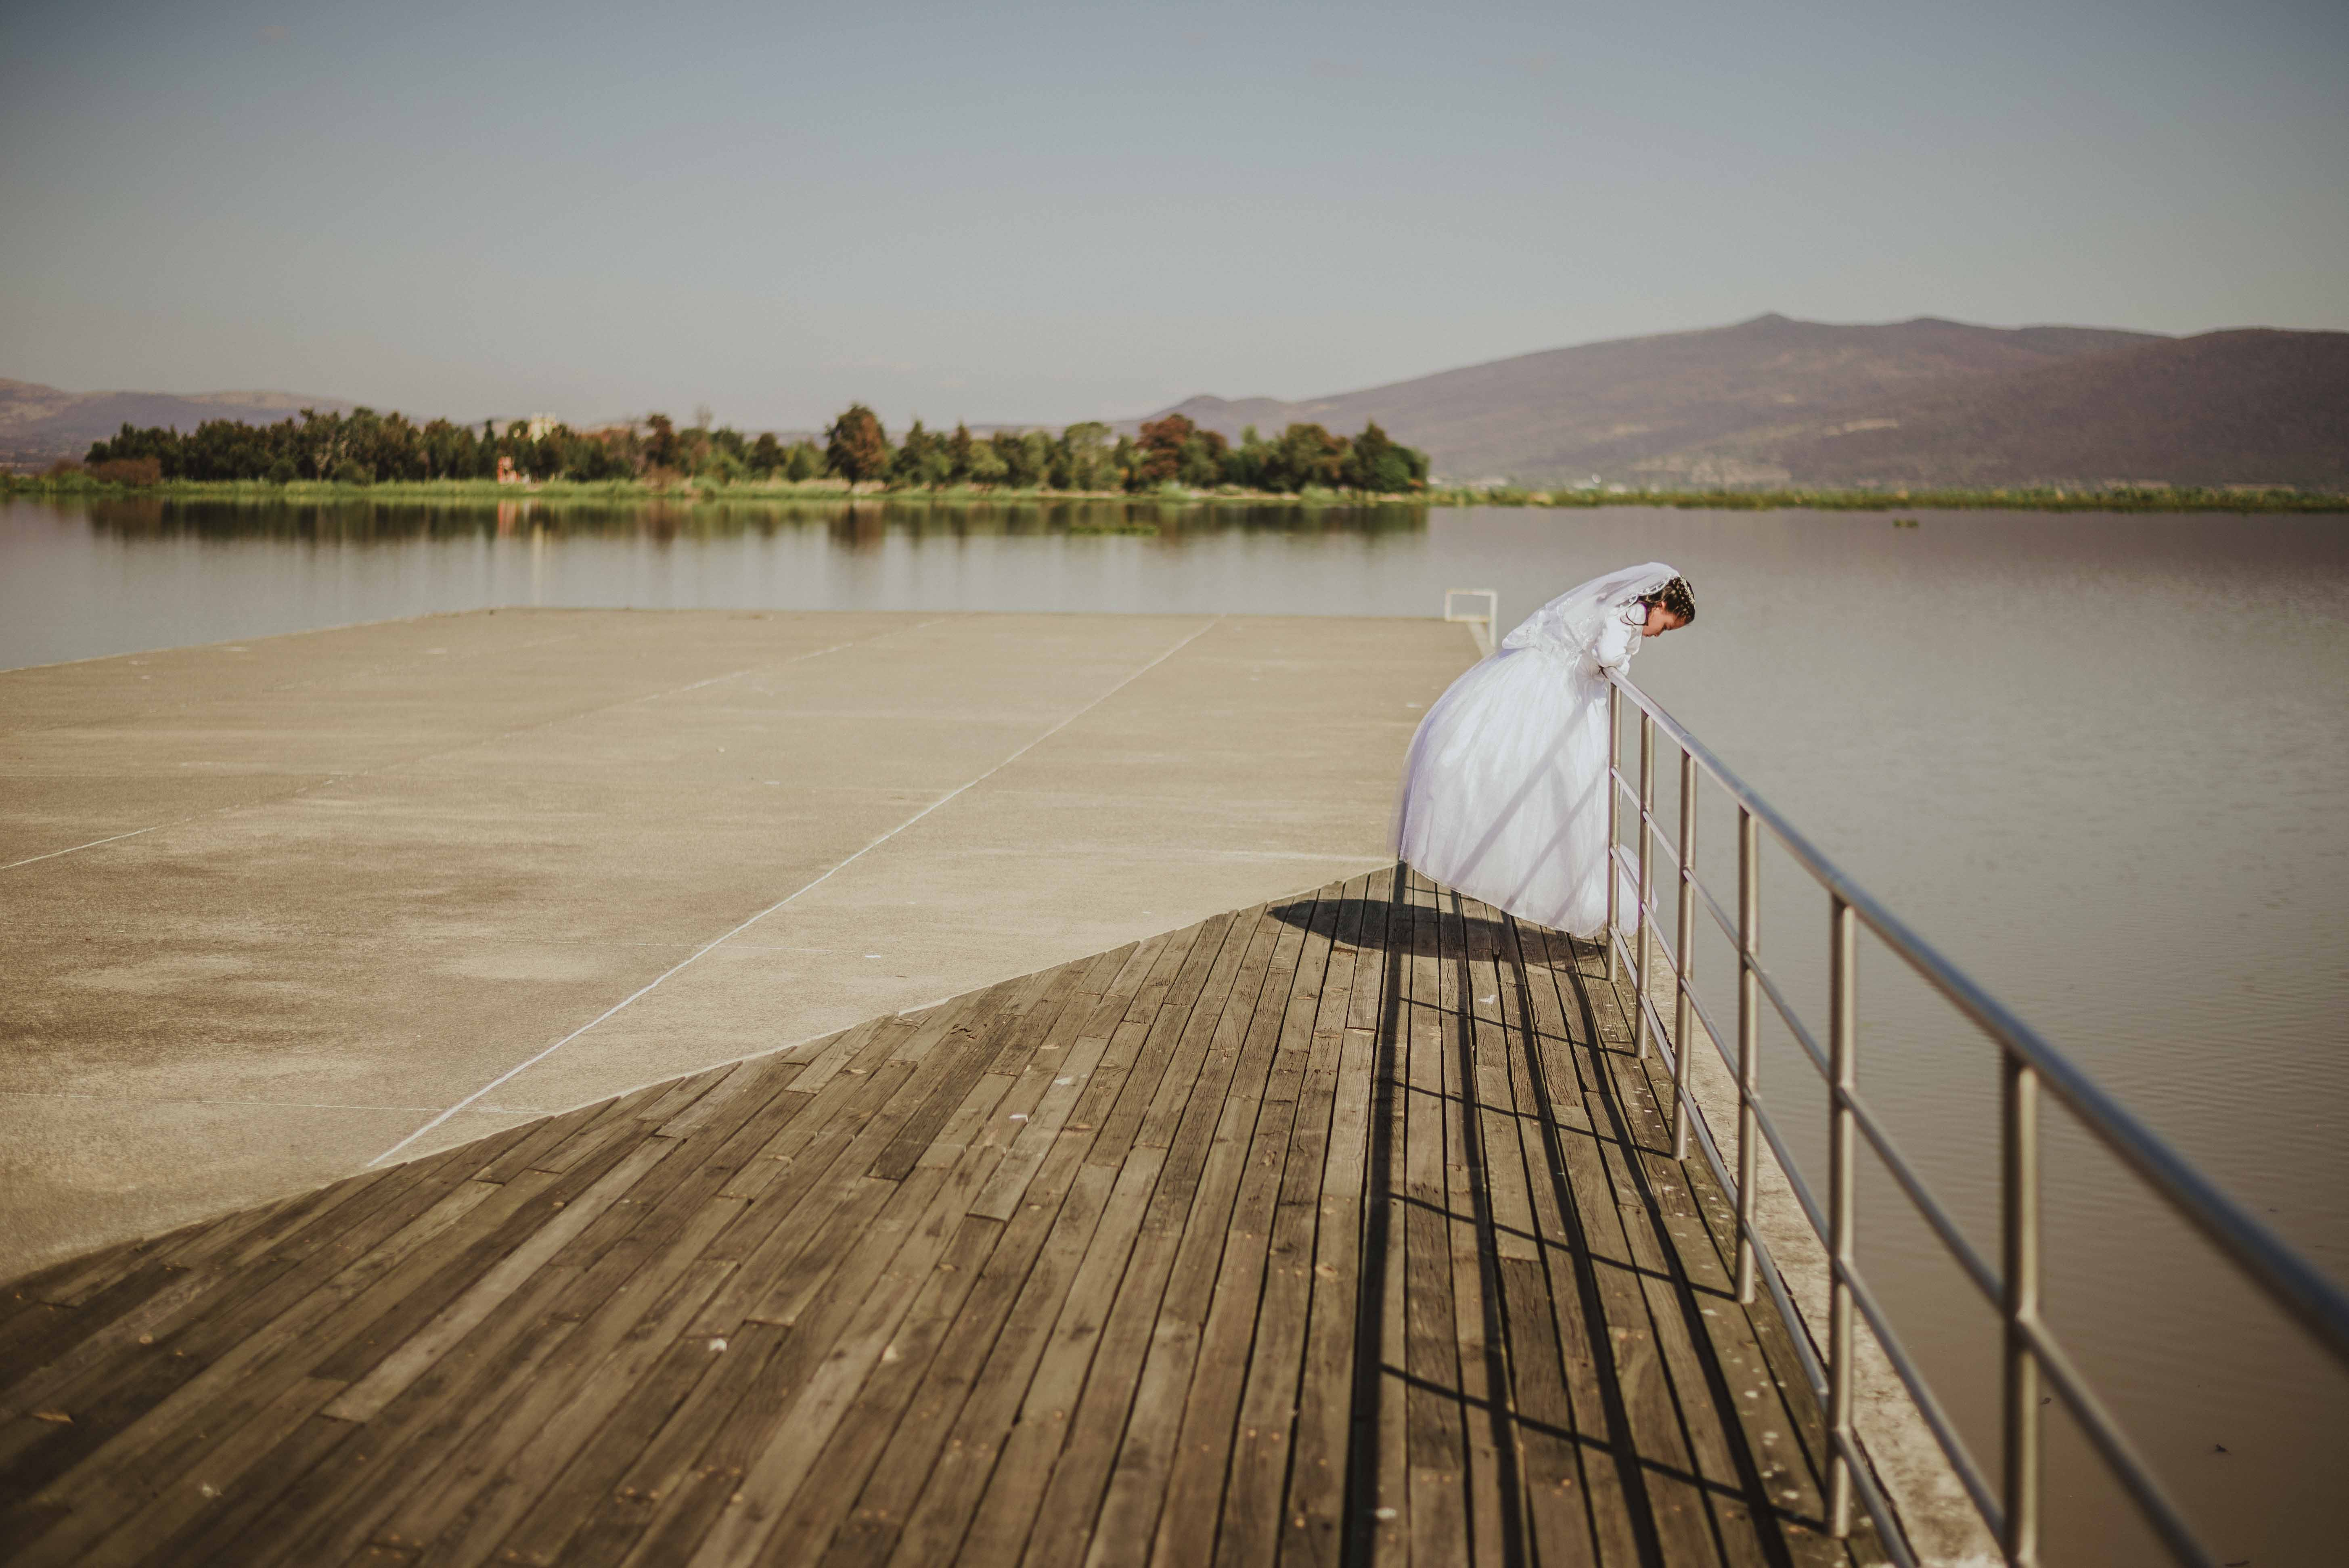 A woman in a wedding dress leans over the railing to look down at the lake, with an island of trees and mountains in the background.